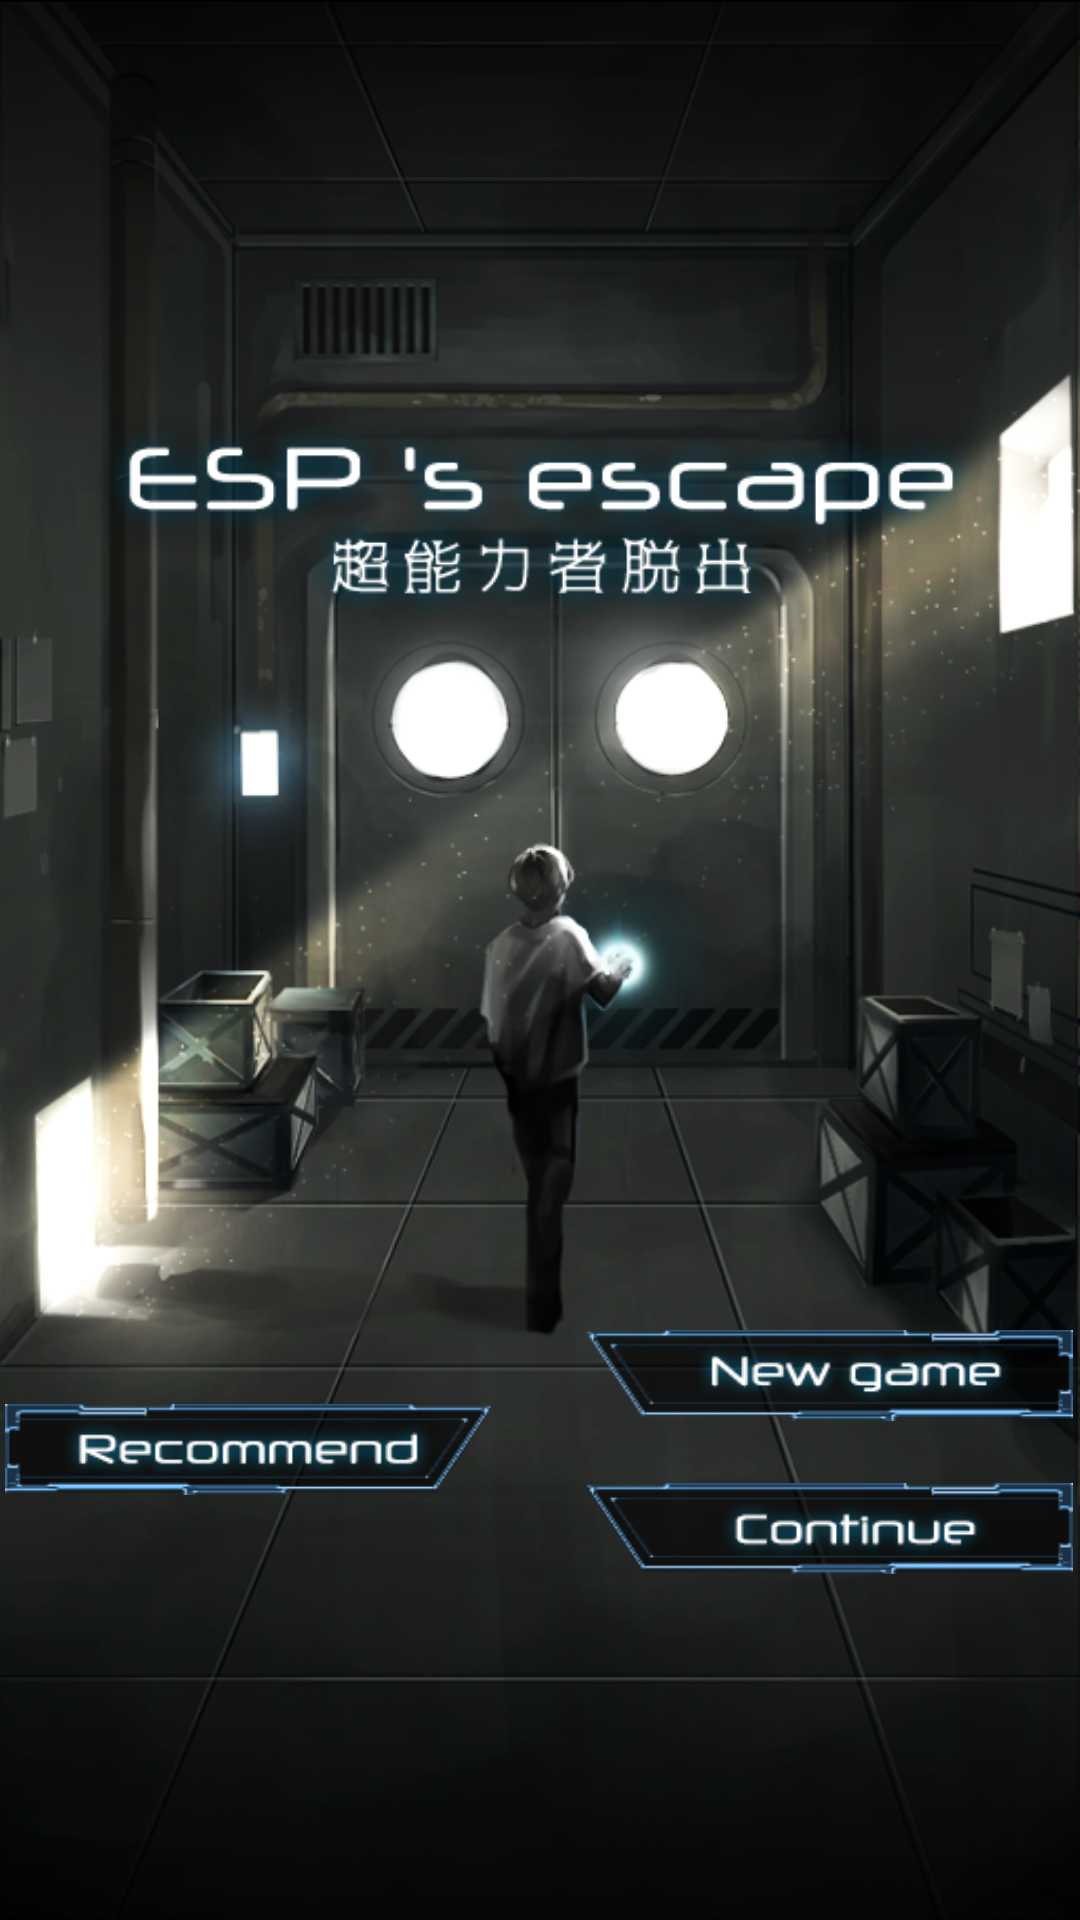 androidアプリ 超能力脱出 -ESP's escape-攻略スクリーンショット1